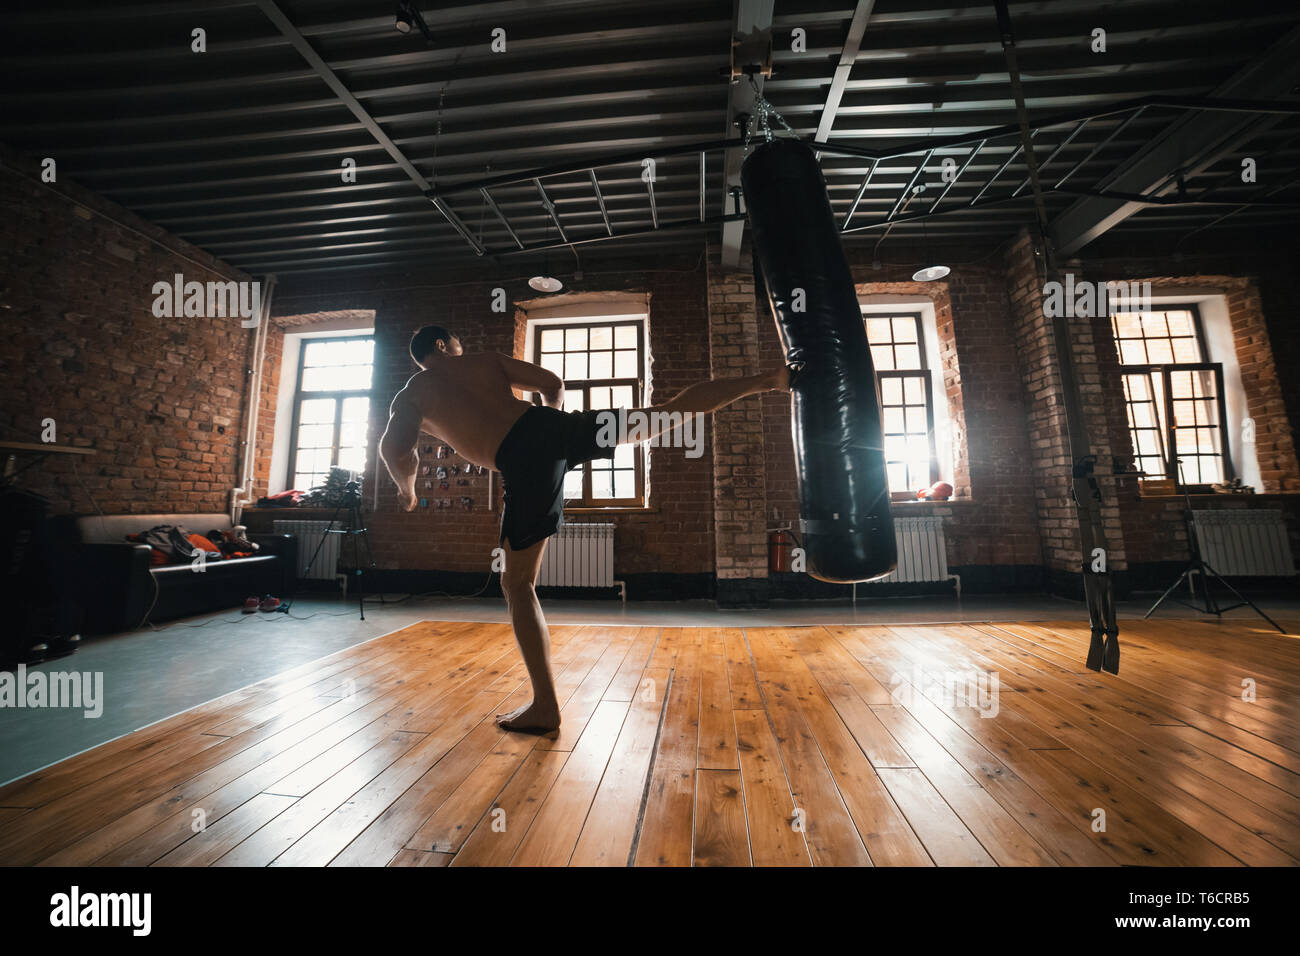 An athletic man boxer training with a punching bag in the gym. Kicking the bag with a leg - Stock Image